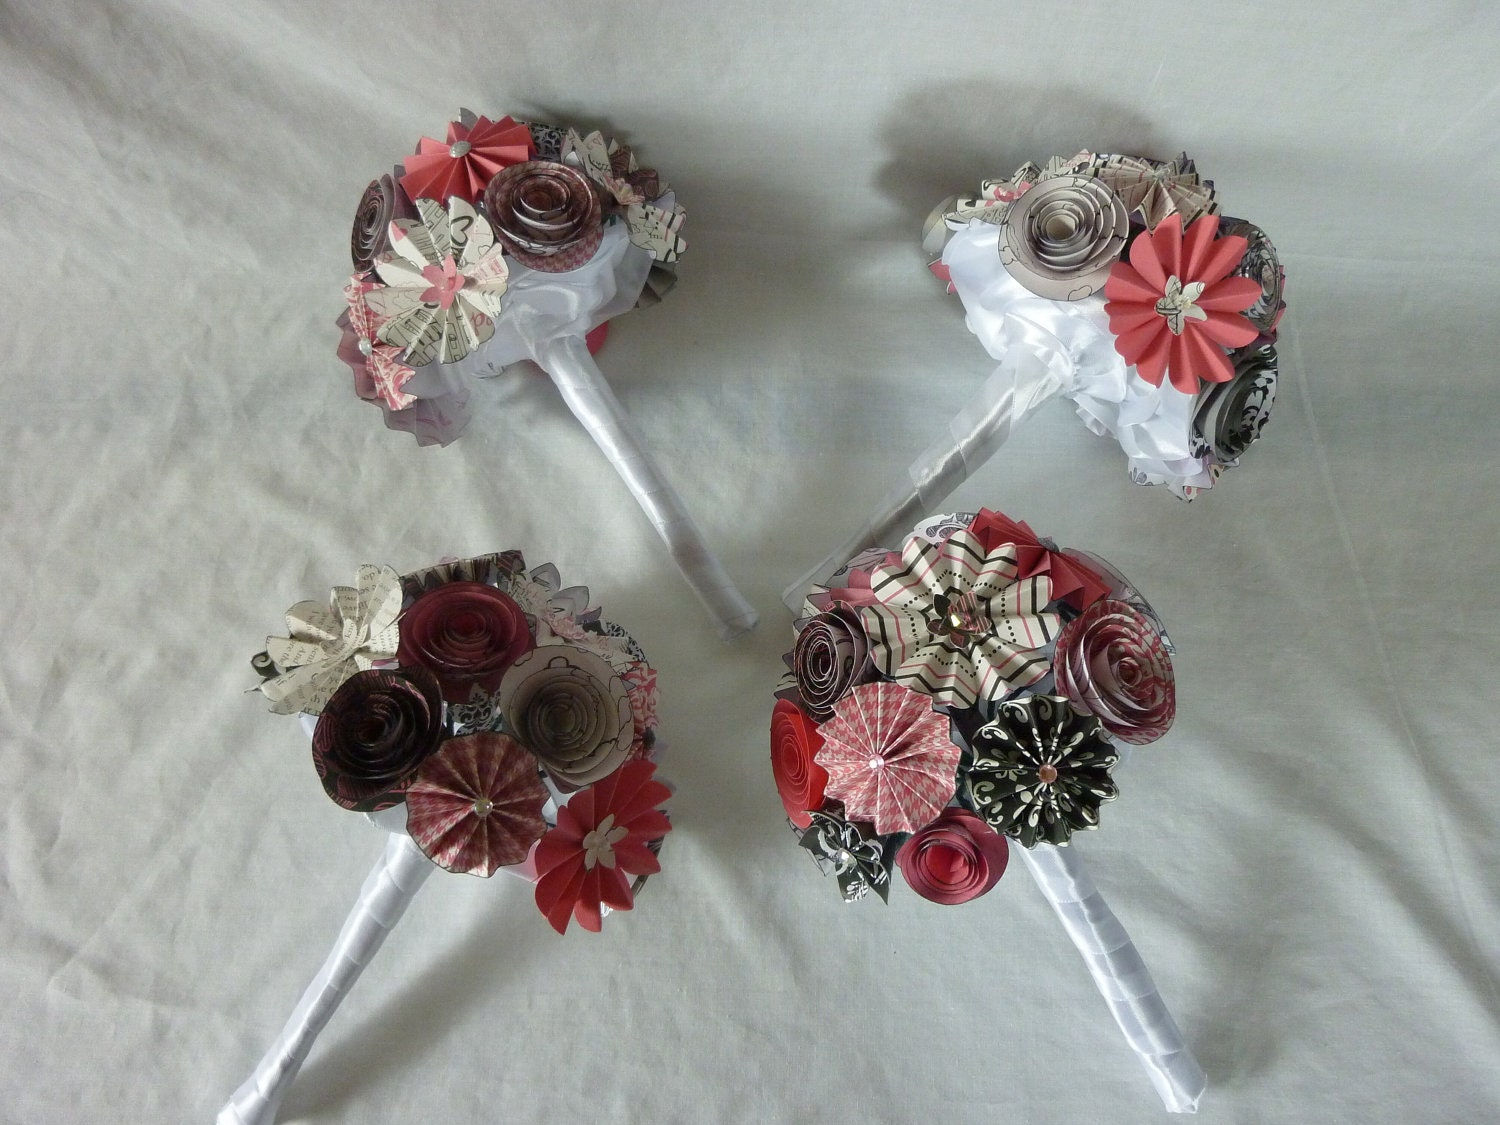 Some of my paper flower bouquets